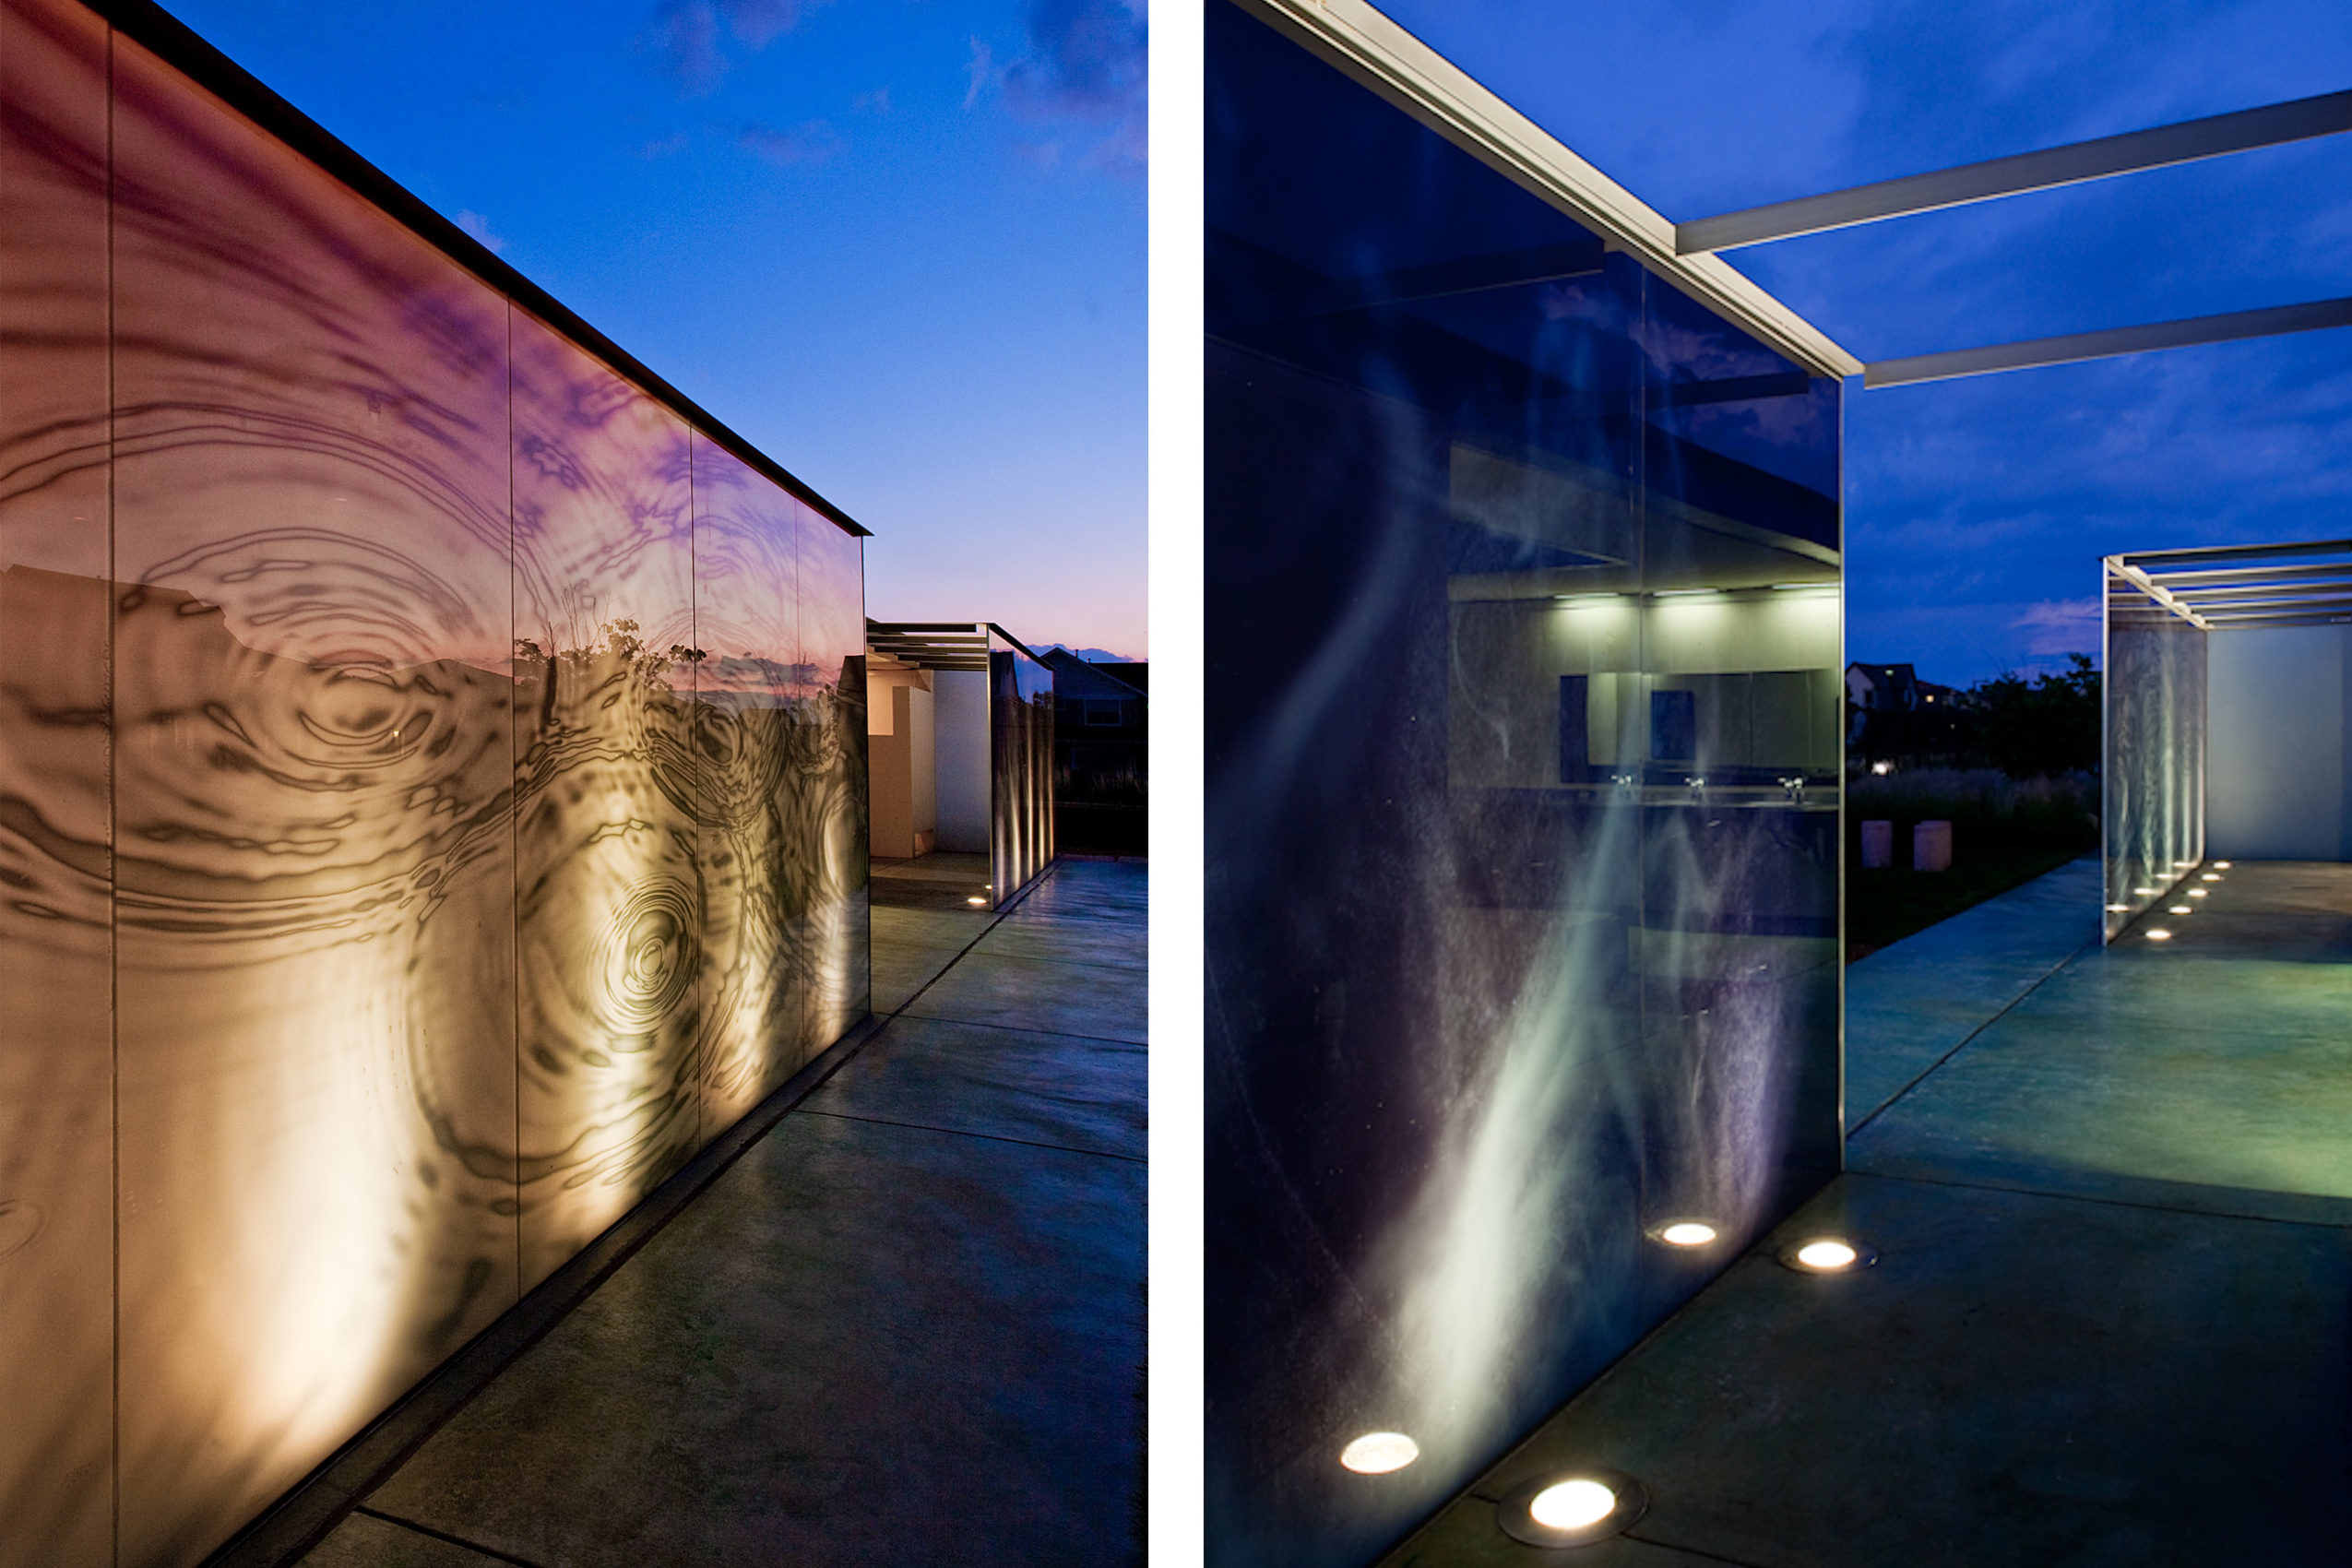 Poolhouse 3 by Semple Brown Design and Renée del Gaudio. Photographic panels by Urban Rock Design of Los Angeles.